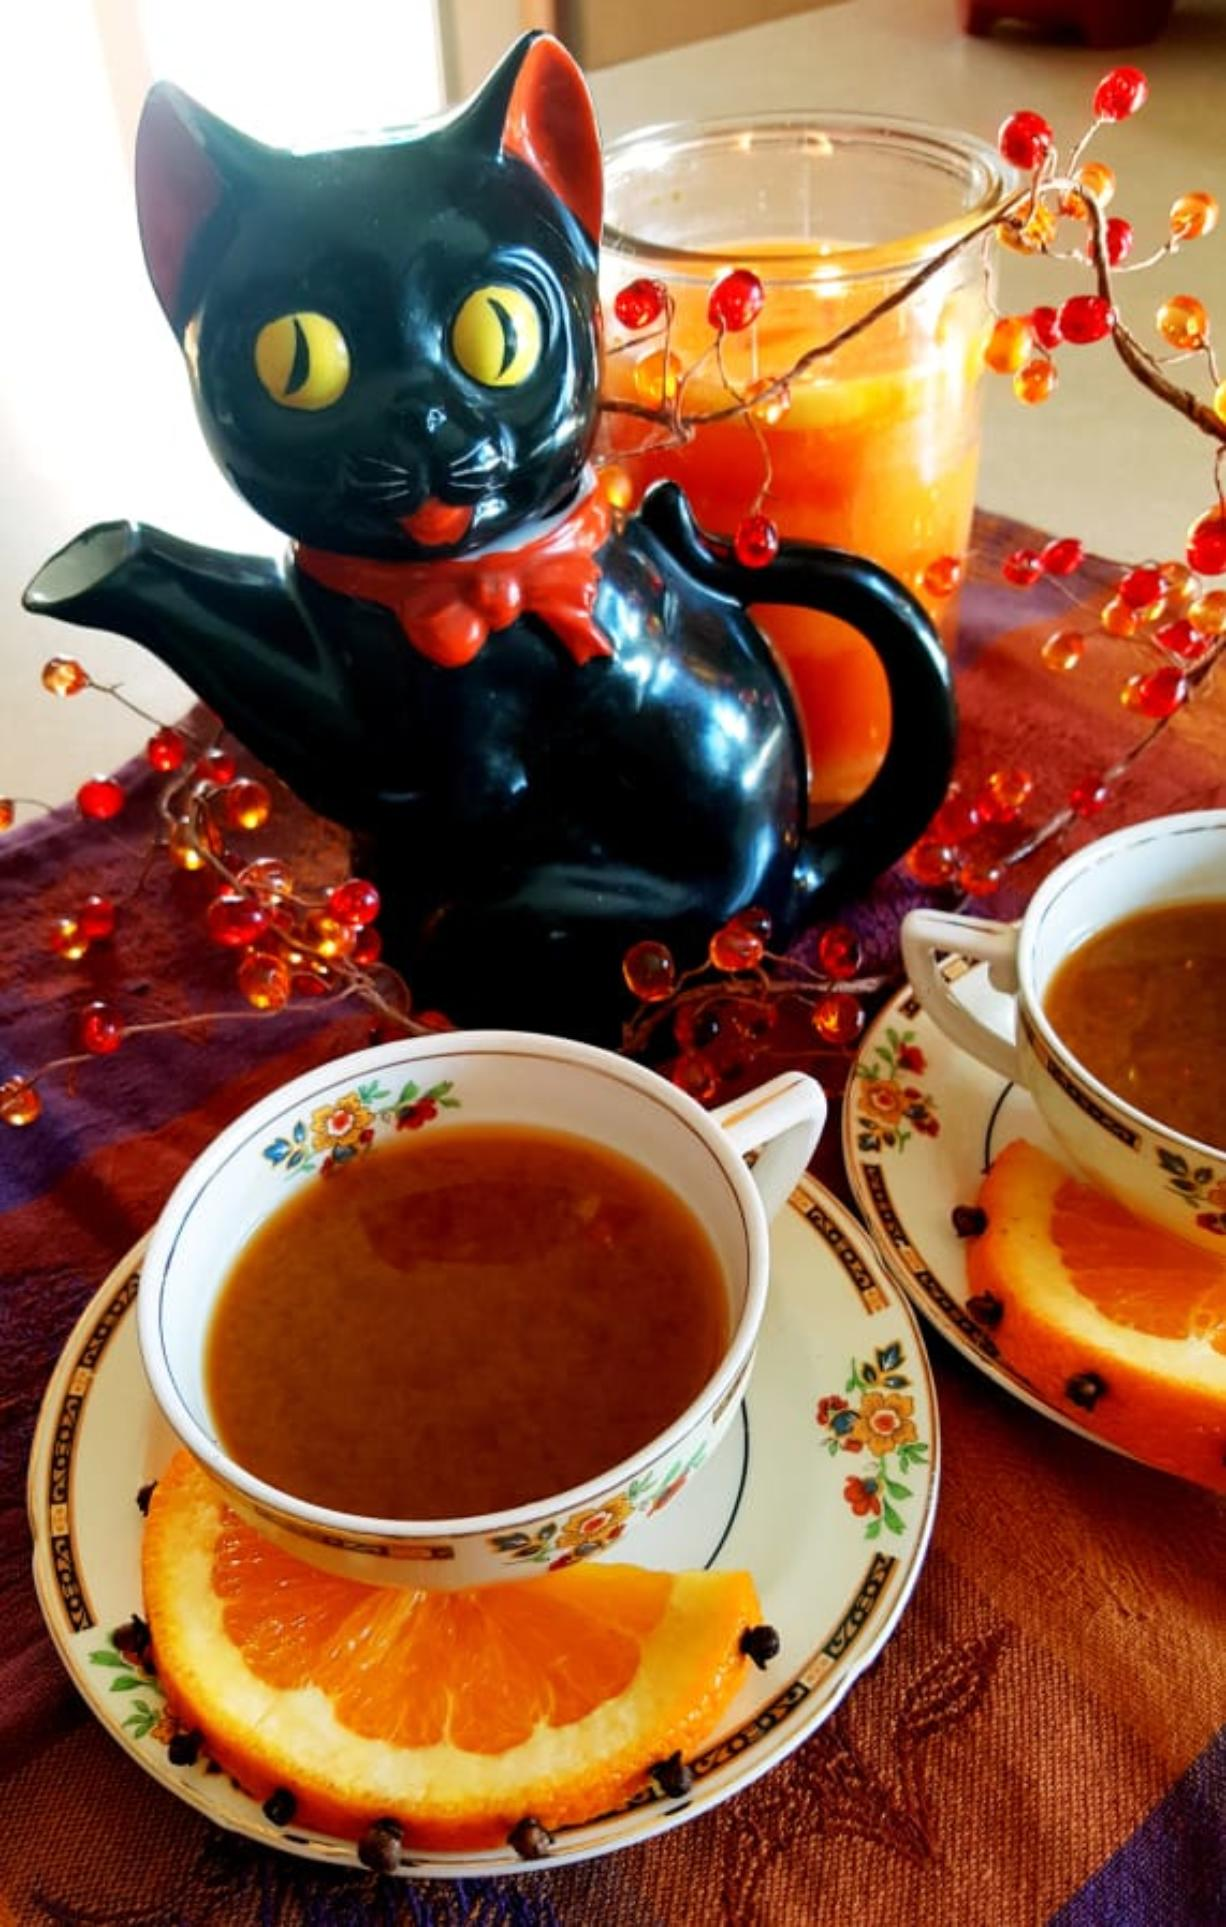 Orange Spice Tea smells scrumptious while it's simmering and makes you feel cozier with each sip.